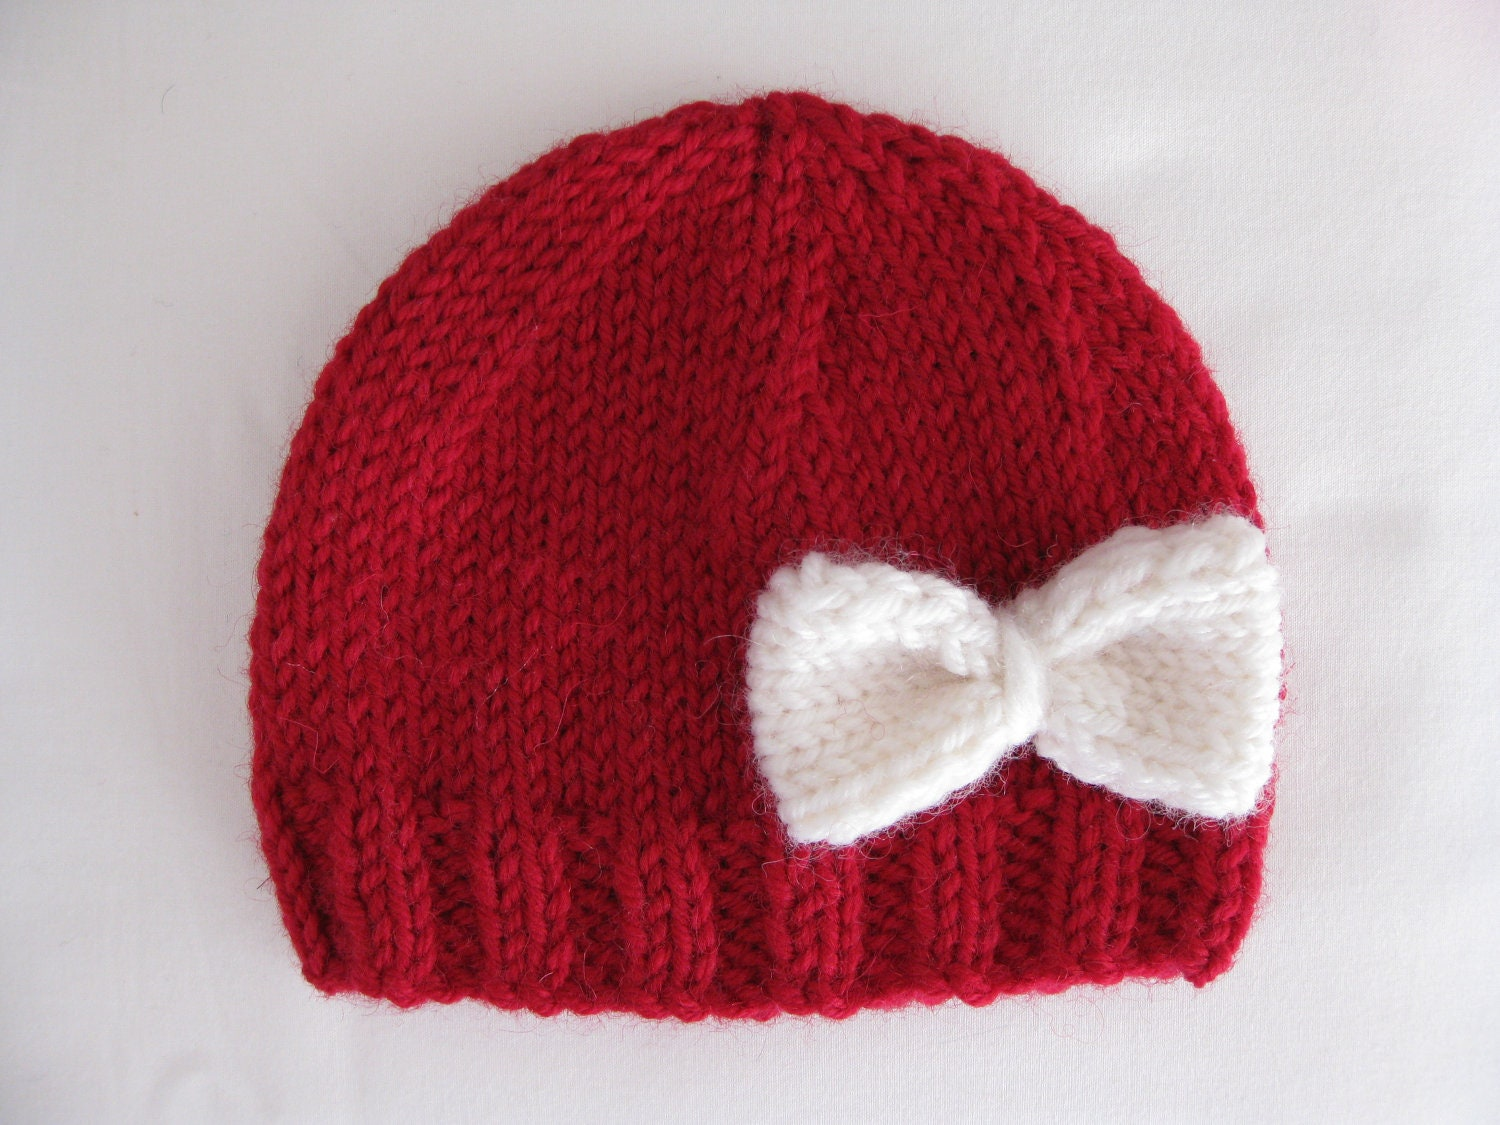 Newborn Beanie Knitting Pattern : Pattern knit preemie newborn hat bow baby beanie 8ply DK double knit light wo...